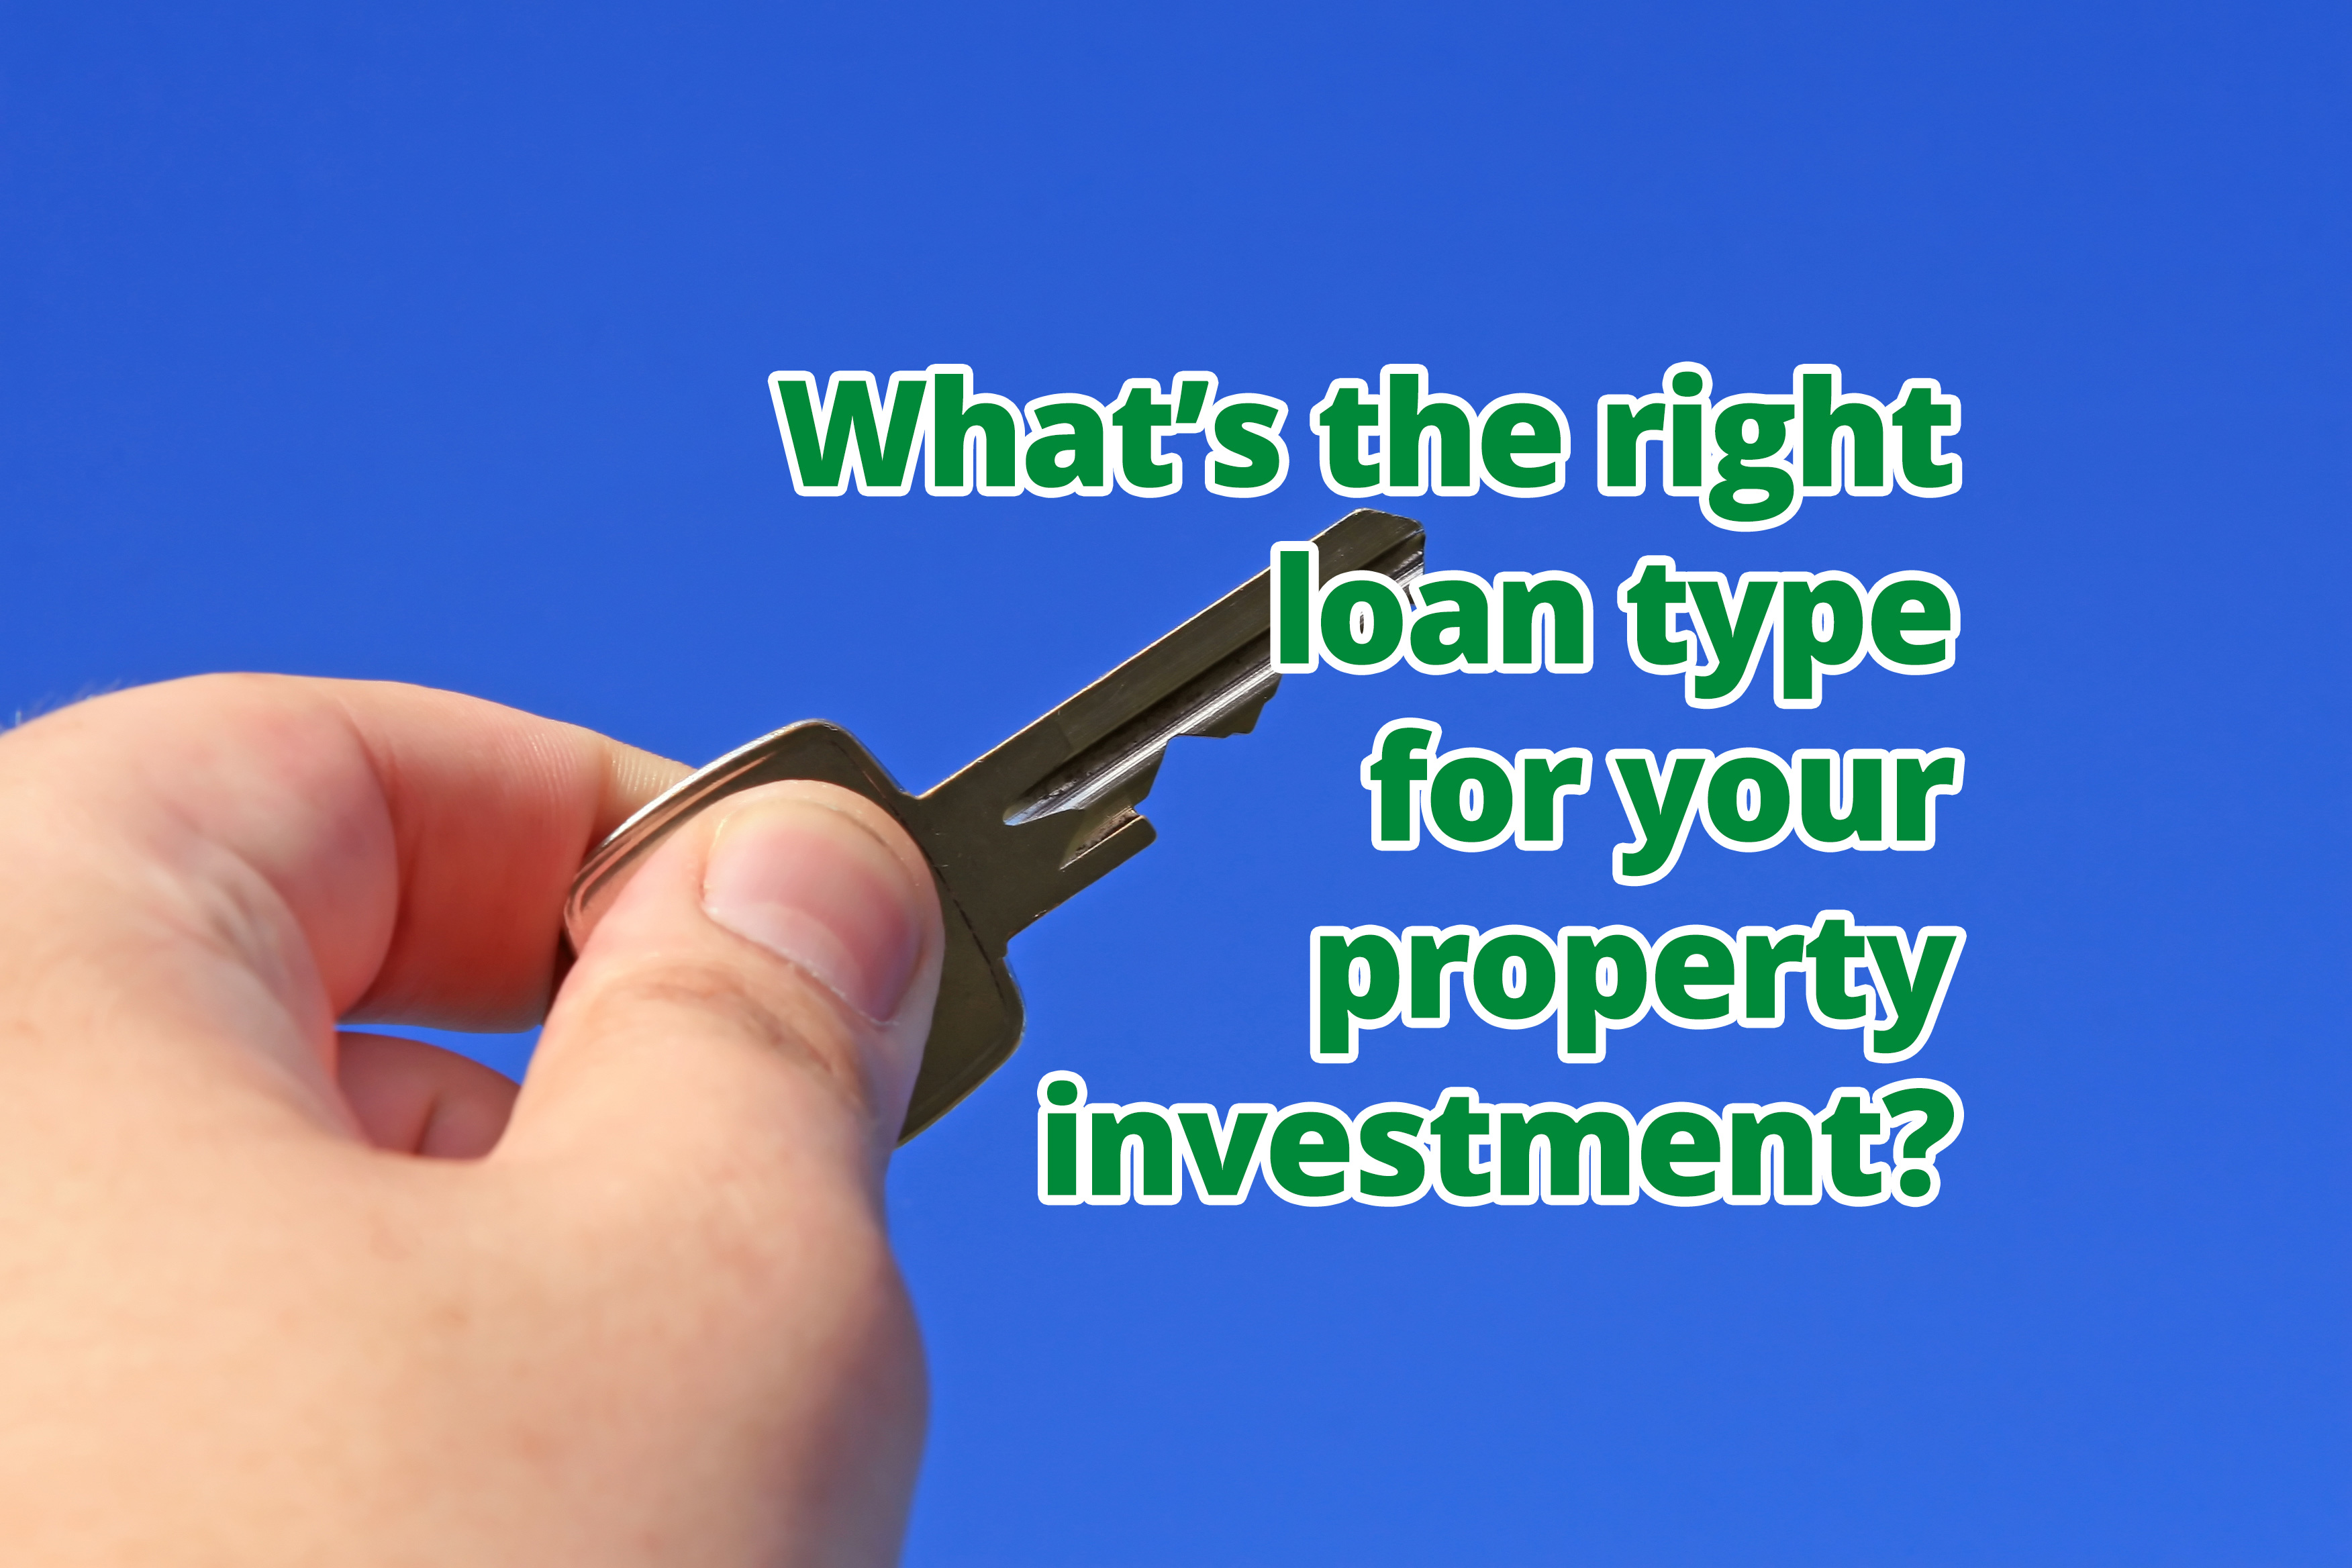 What's the right loan type for your property investment?